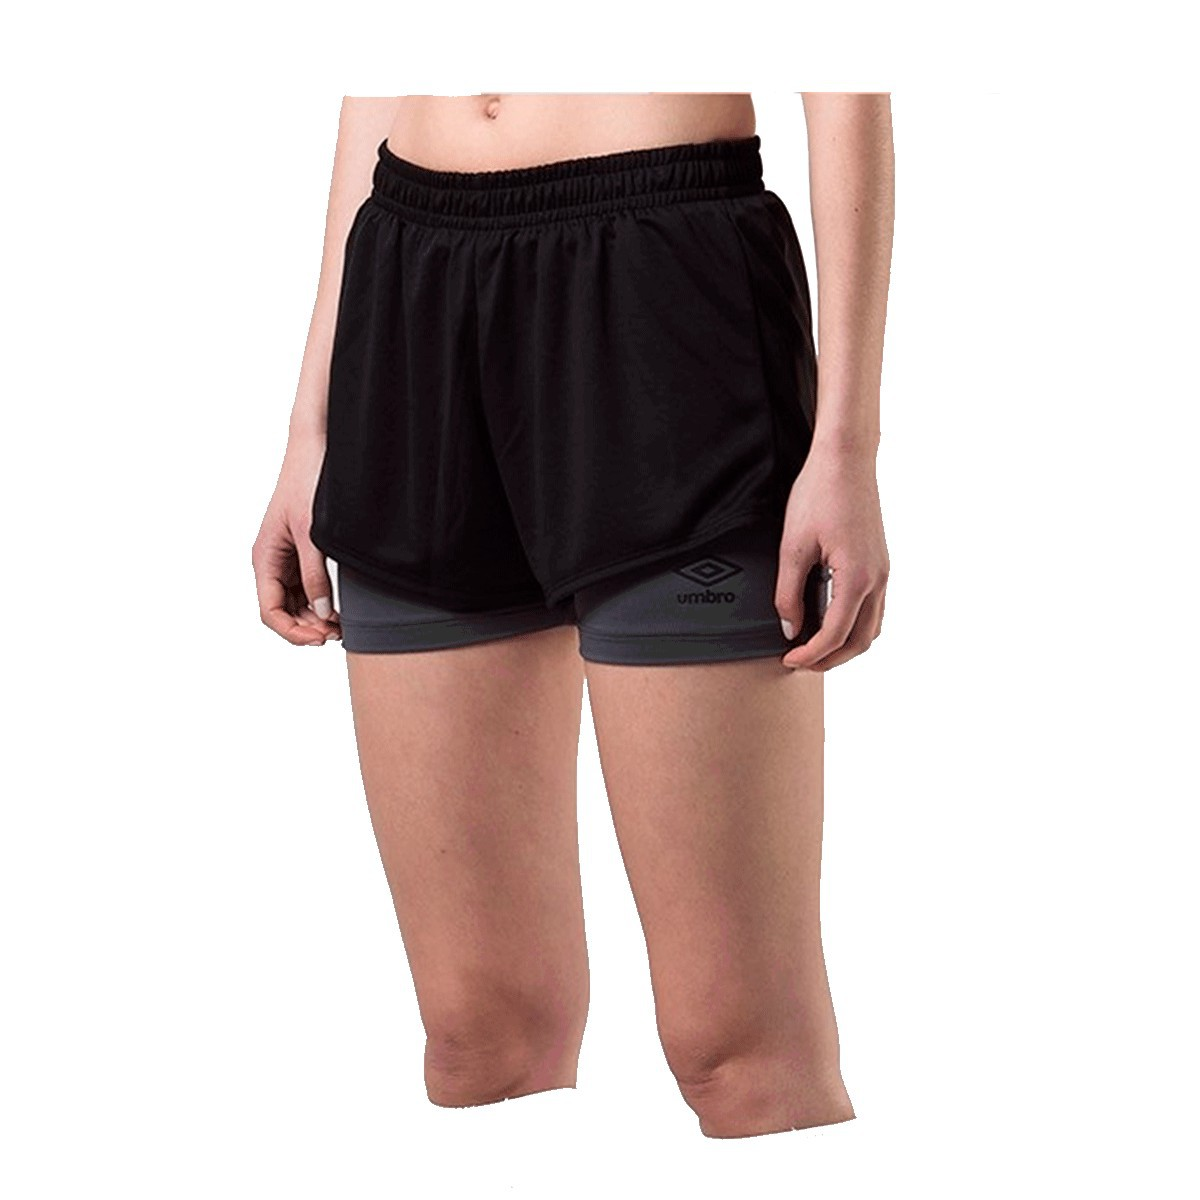 Shorts Umbro Twr Double New Feminino Preto